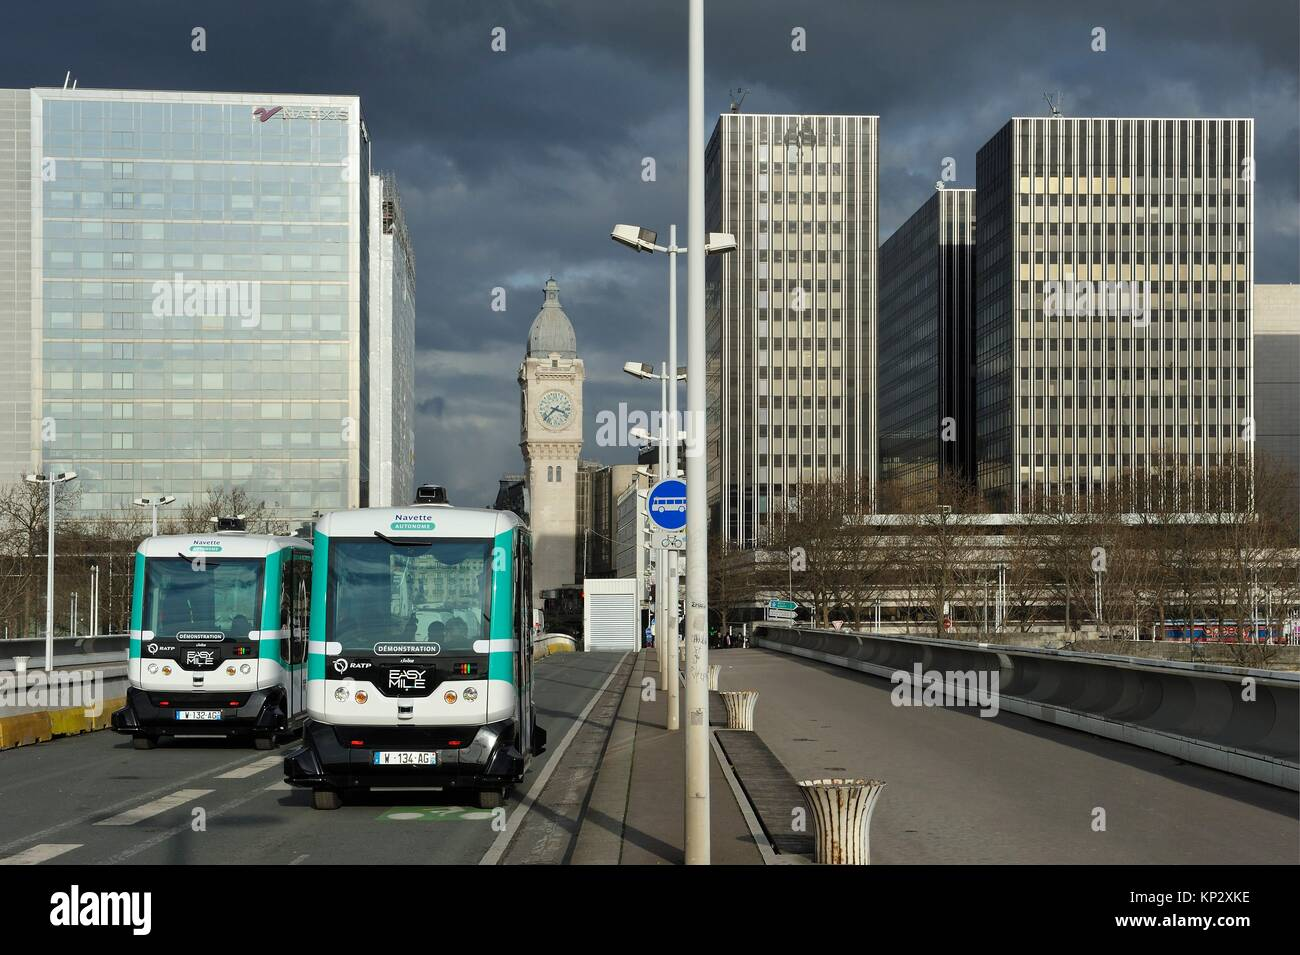 Autonomous shuttle in experiment by RATP on Charles-de-Gaulle Bridge with the Tower Clock of Gare de Lyon in the - Stock Image